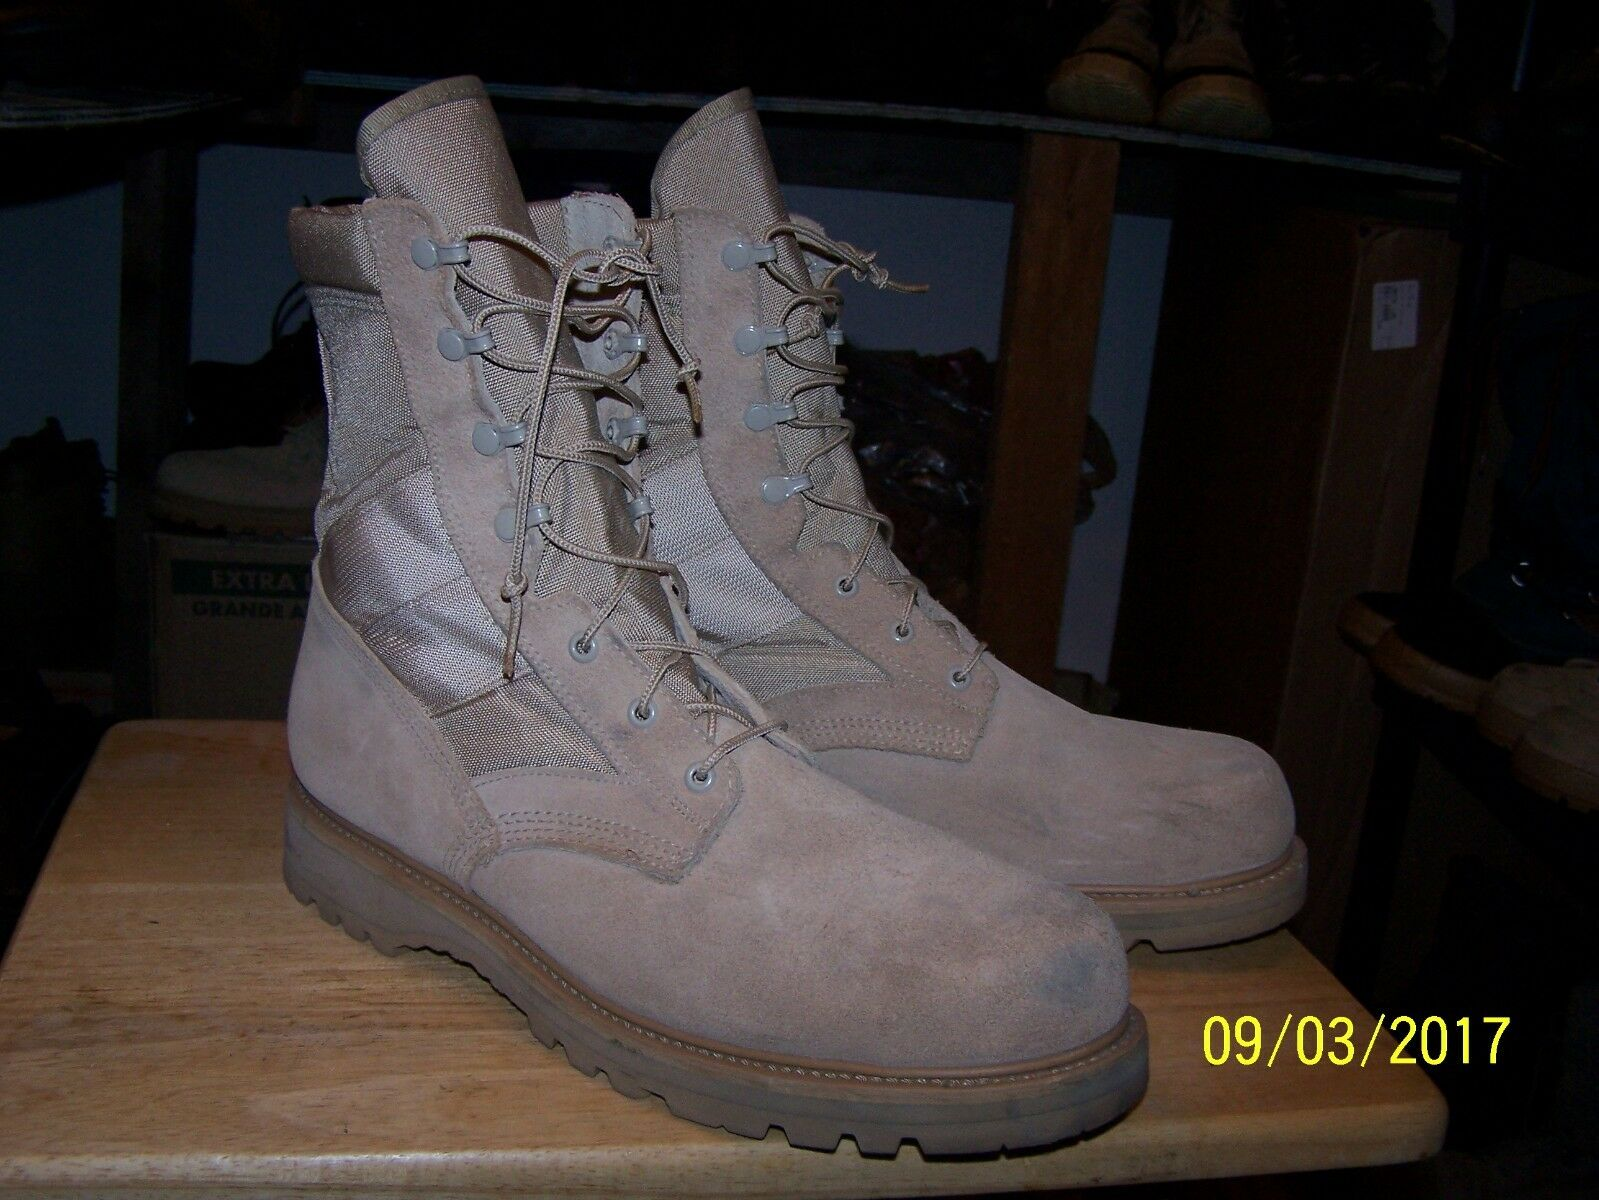 Thgoldgood military combat boots mens 14.5M spec ops navy seals 14.5R steel toe